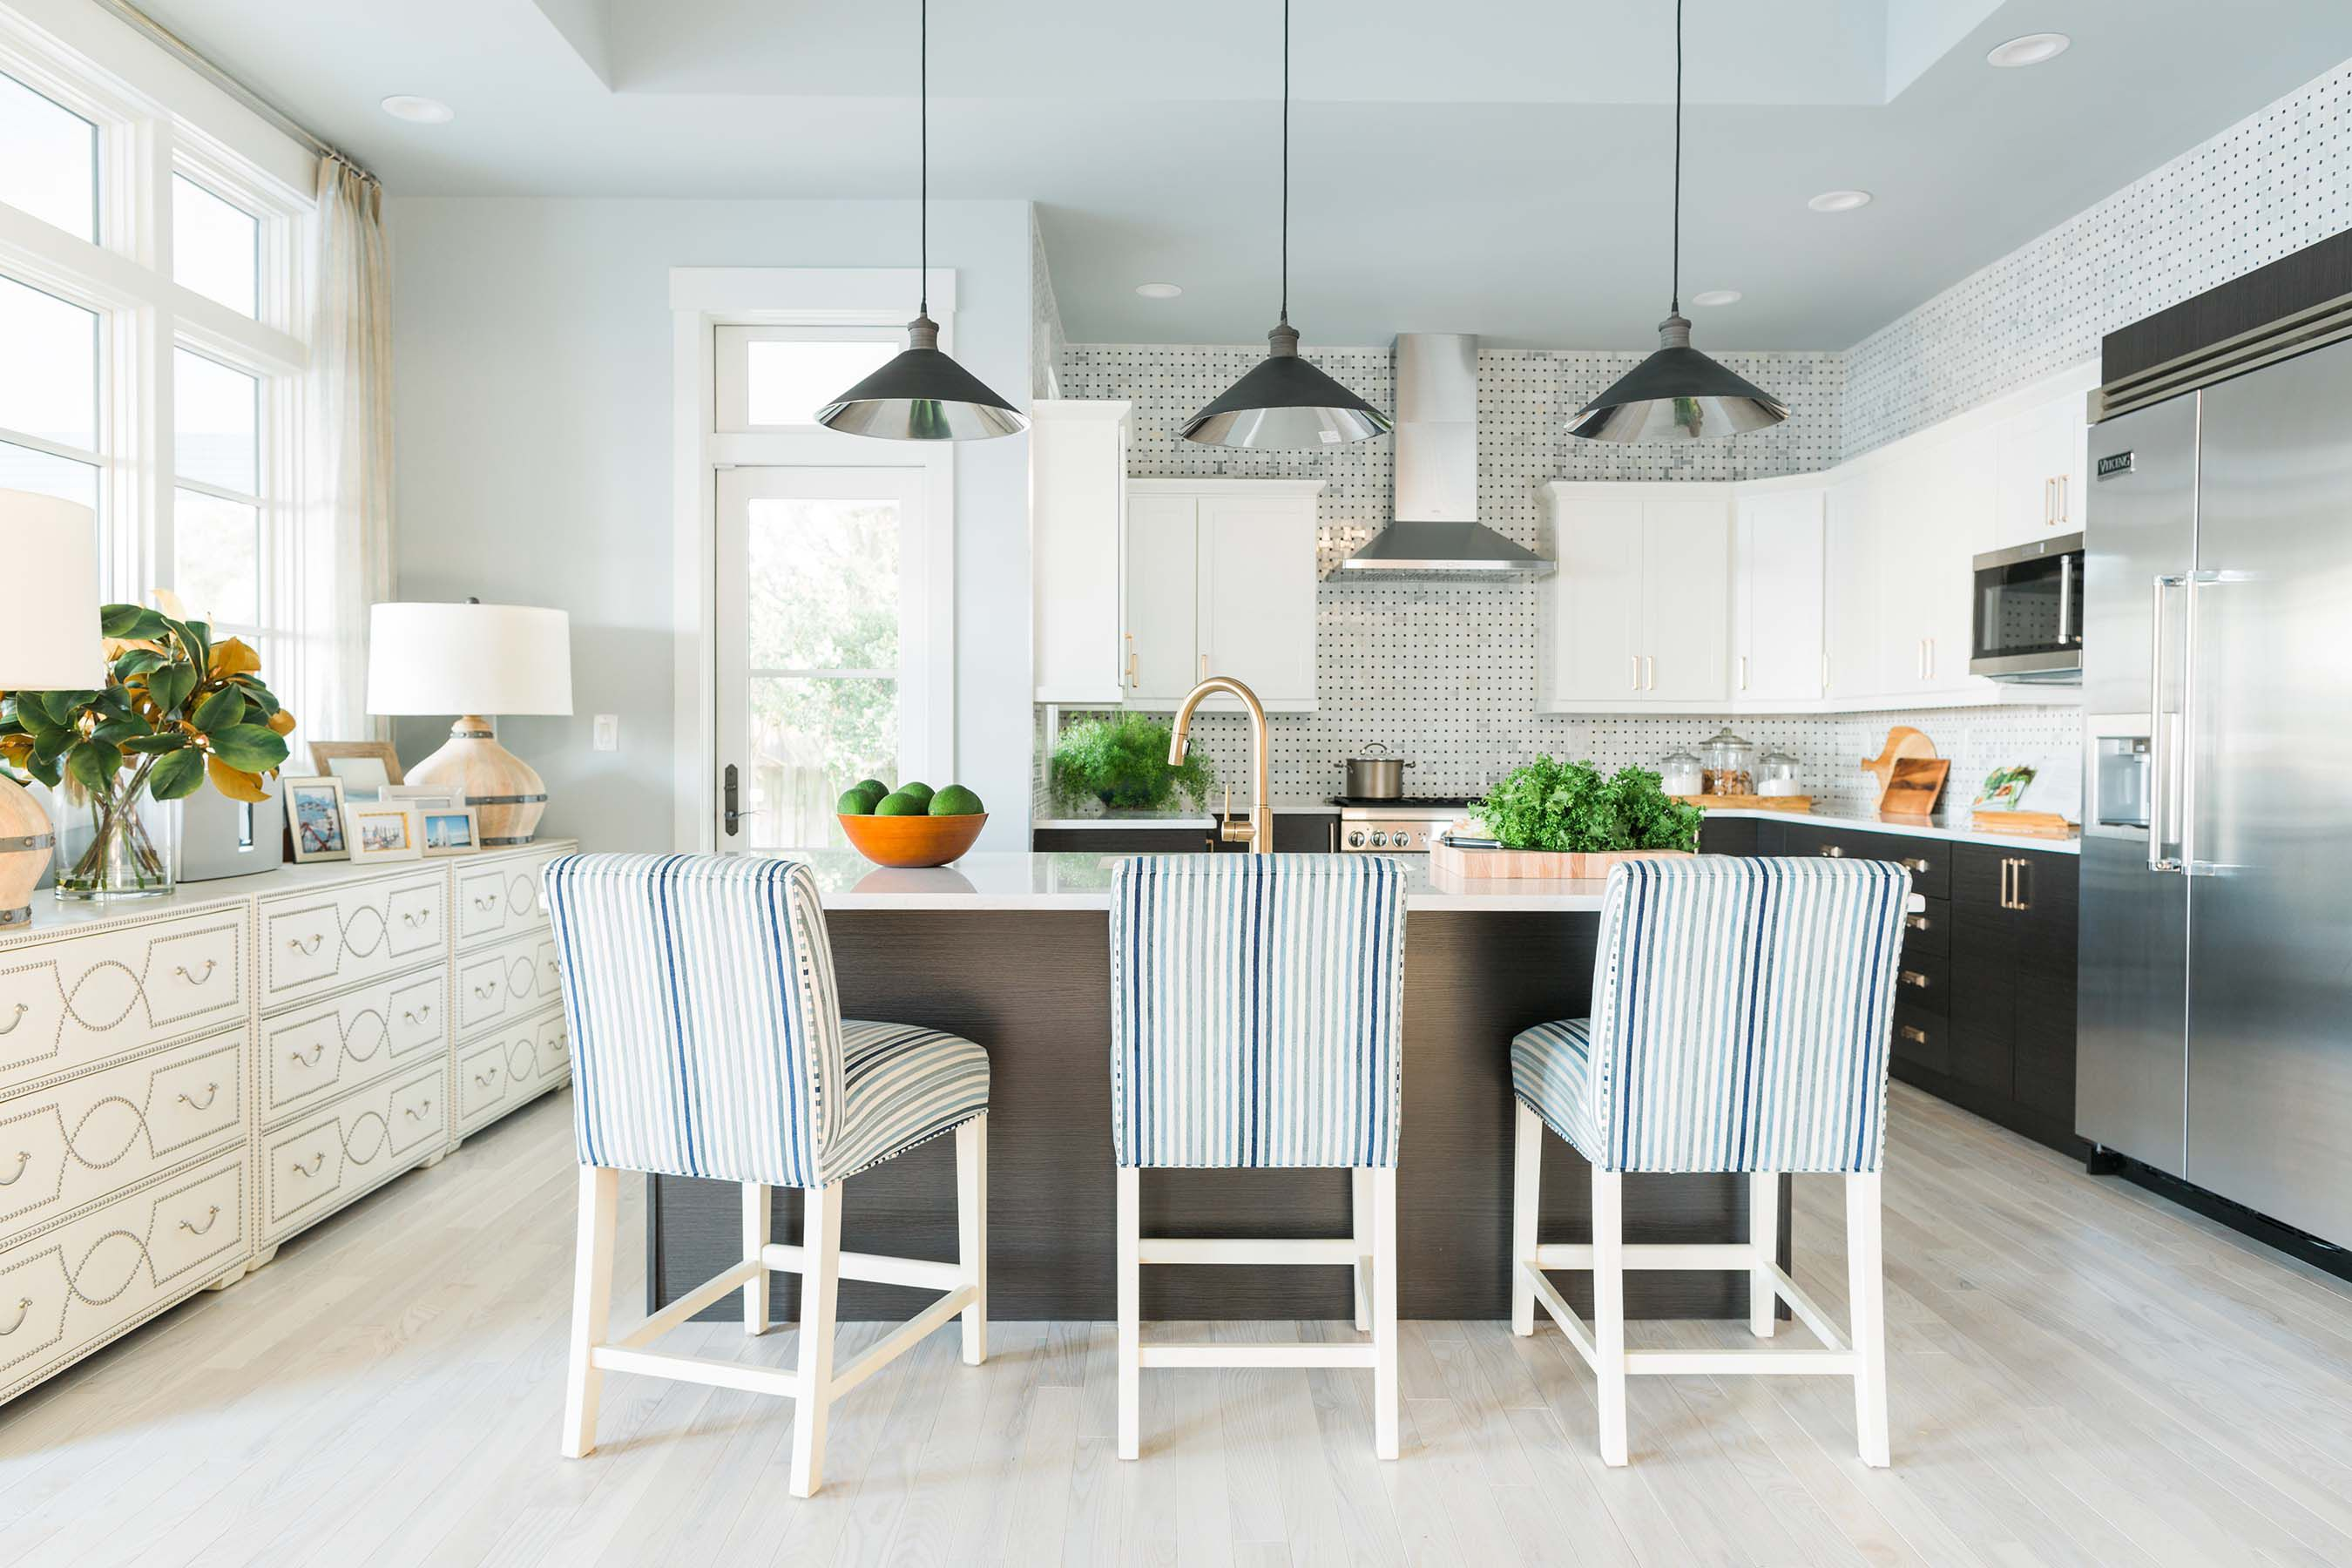 winning dream home design.  16 Things to Know About the 2016 HGTV Dream Home